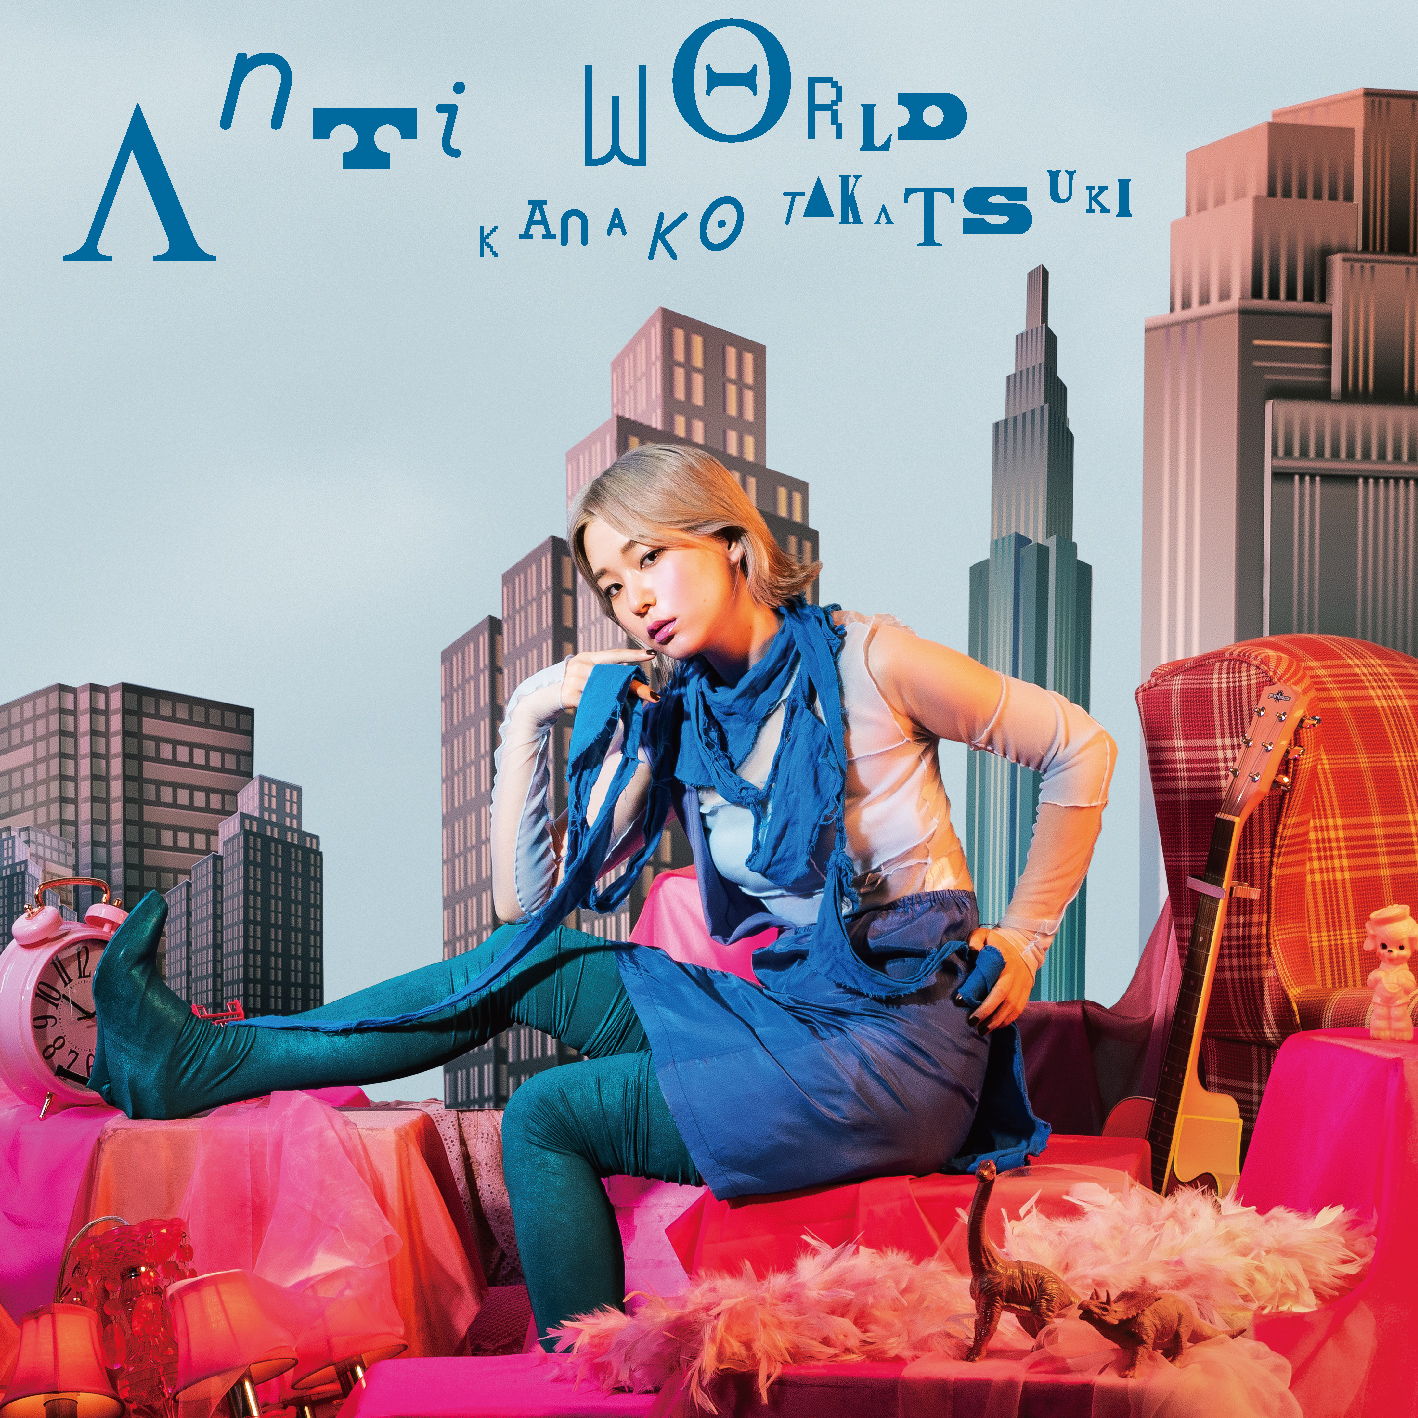 高槻かなこ - Anti world [2020.10.14+MP3+RAR]